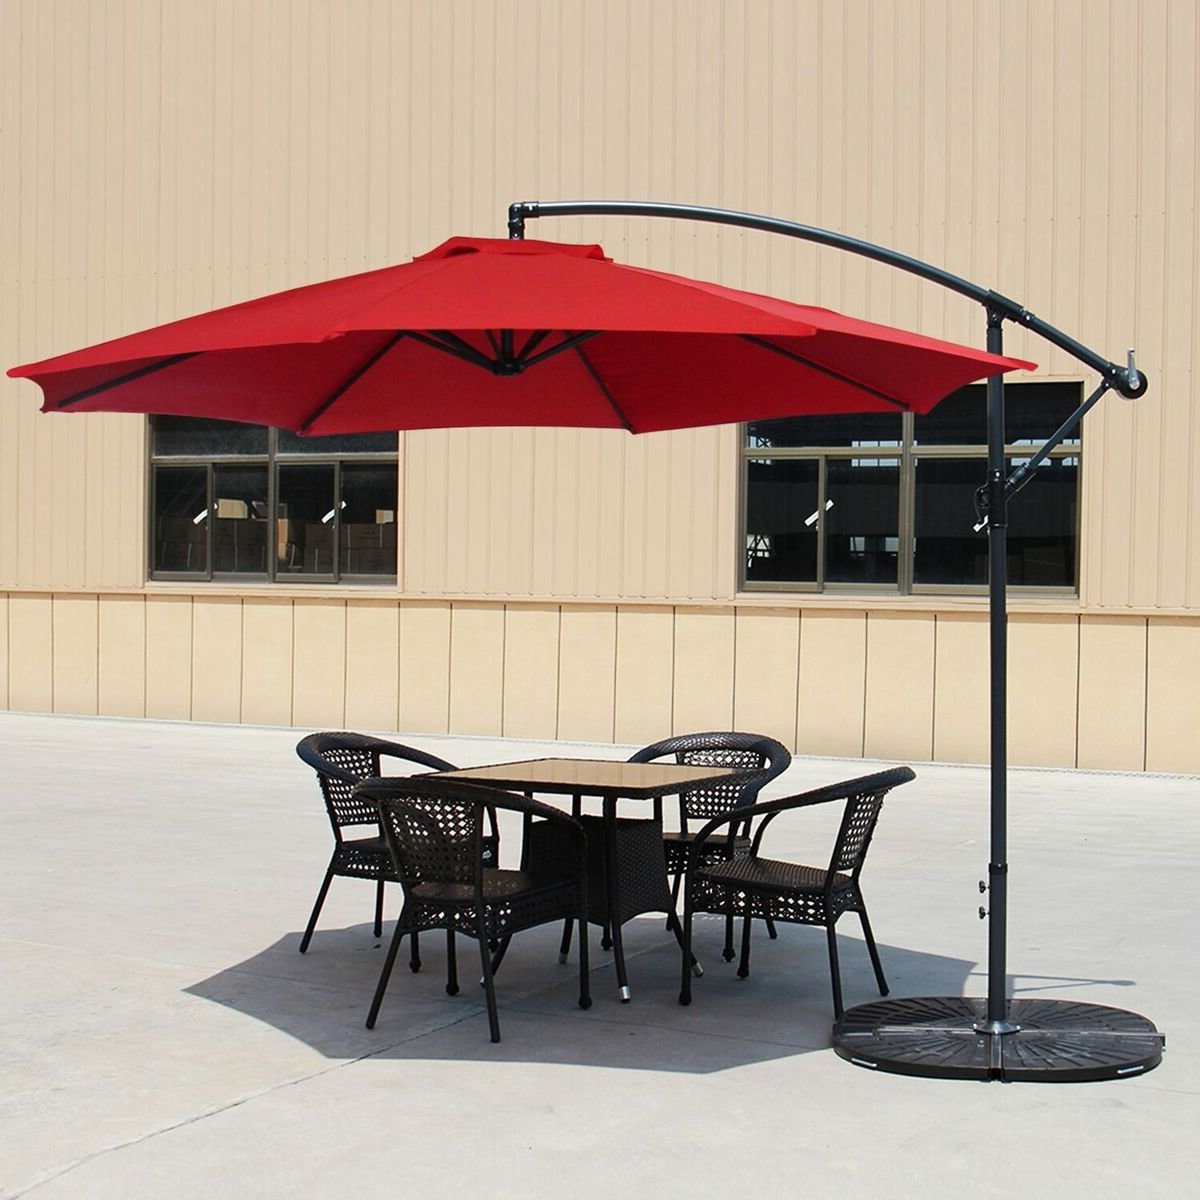 Widely Used Tallulah Sunshade Hanging Outdoor Cantilever Umbrellas Inside Carillon 10' Cantilever Umbrella (View 20 of 20)